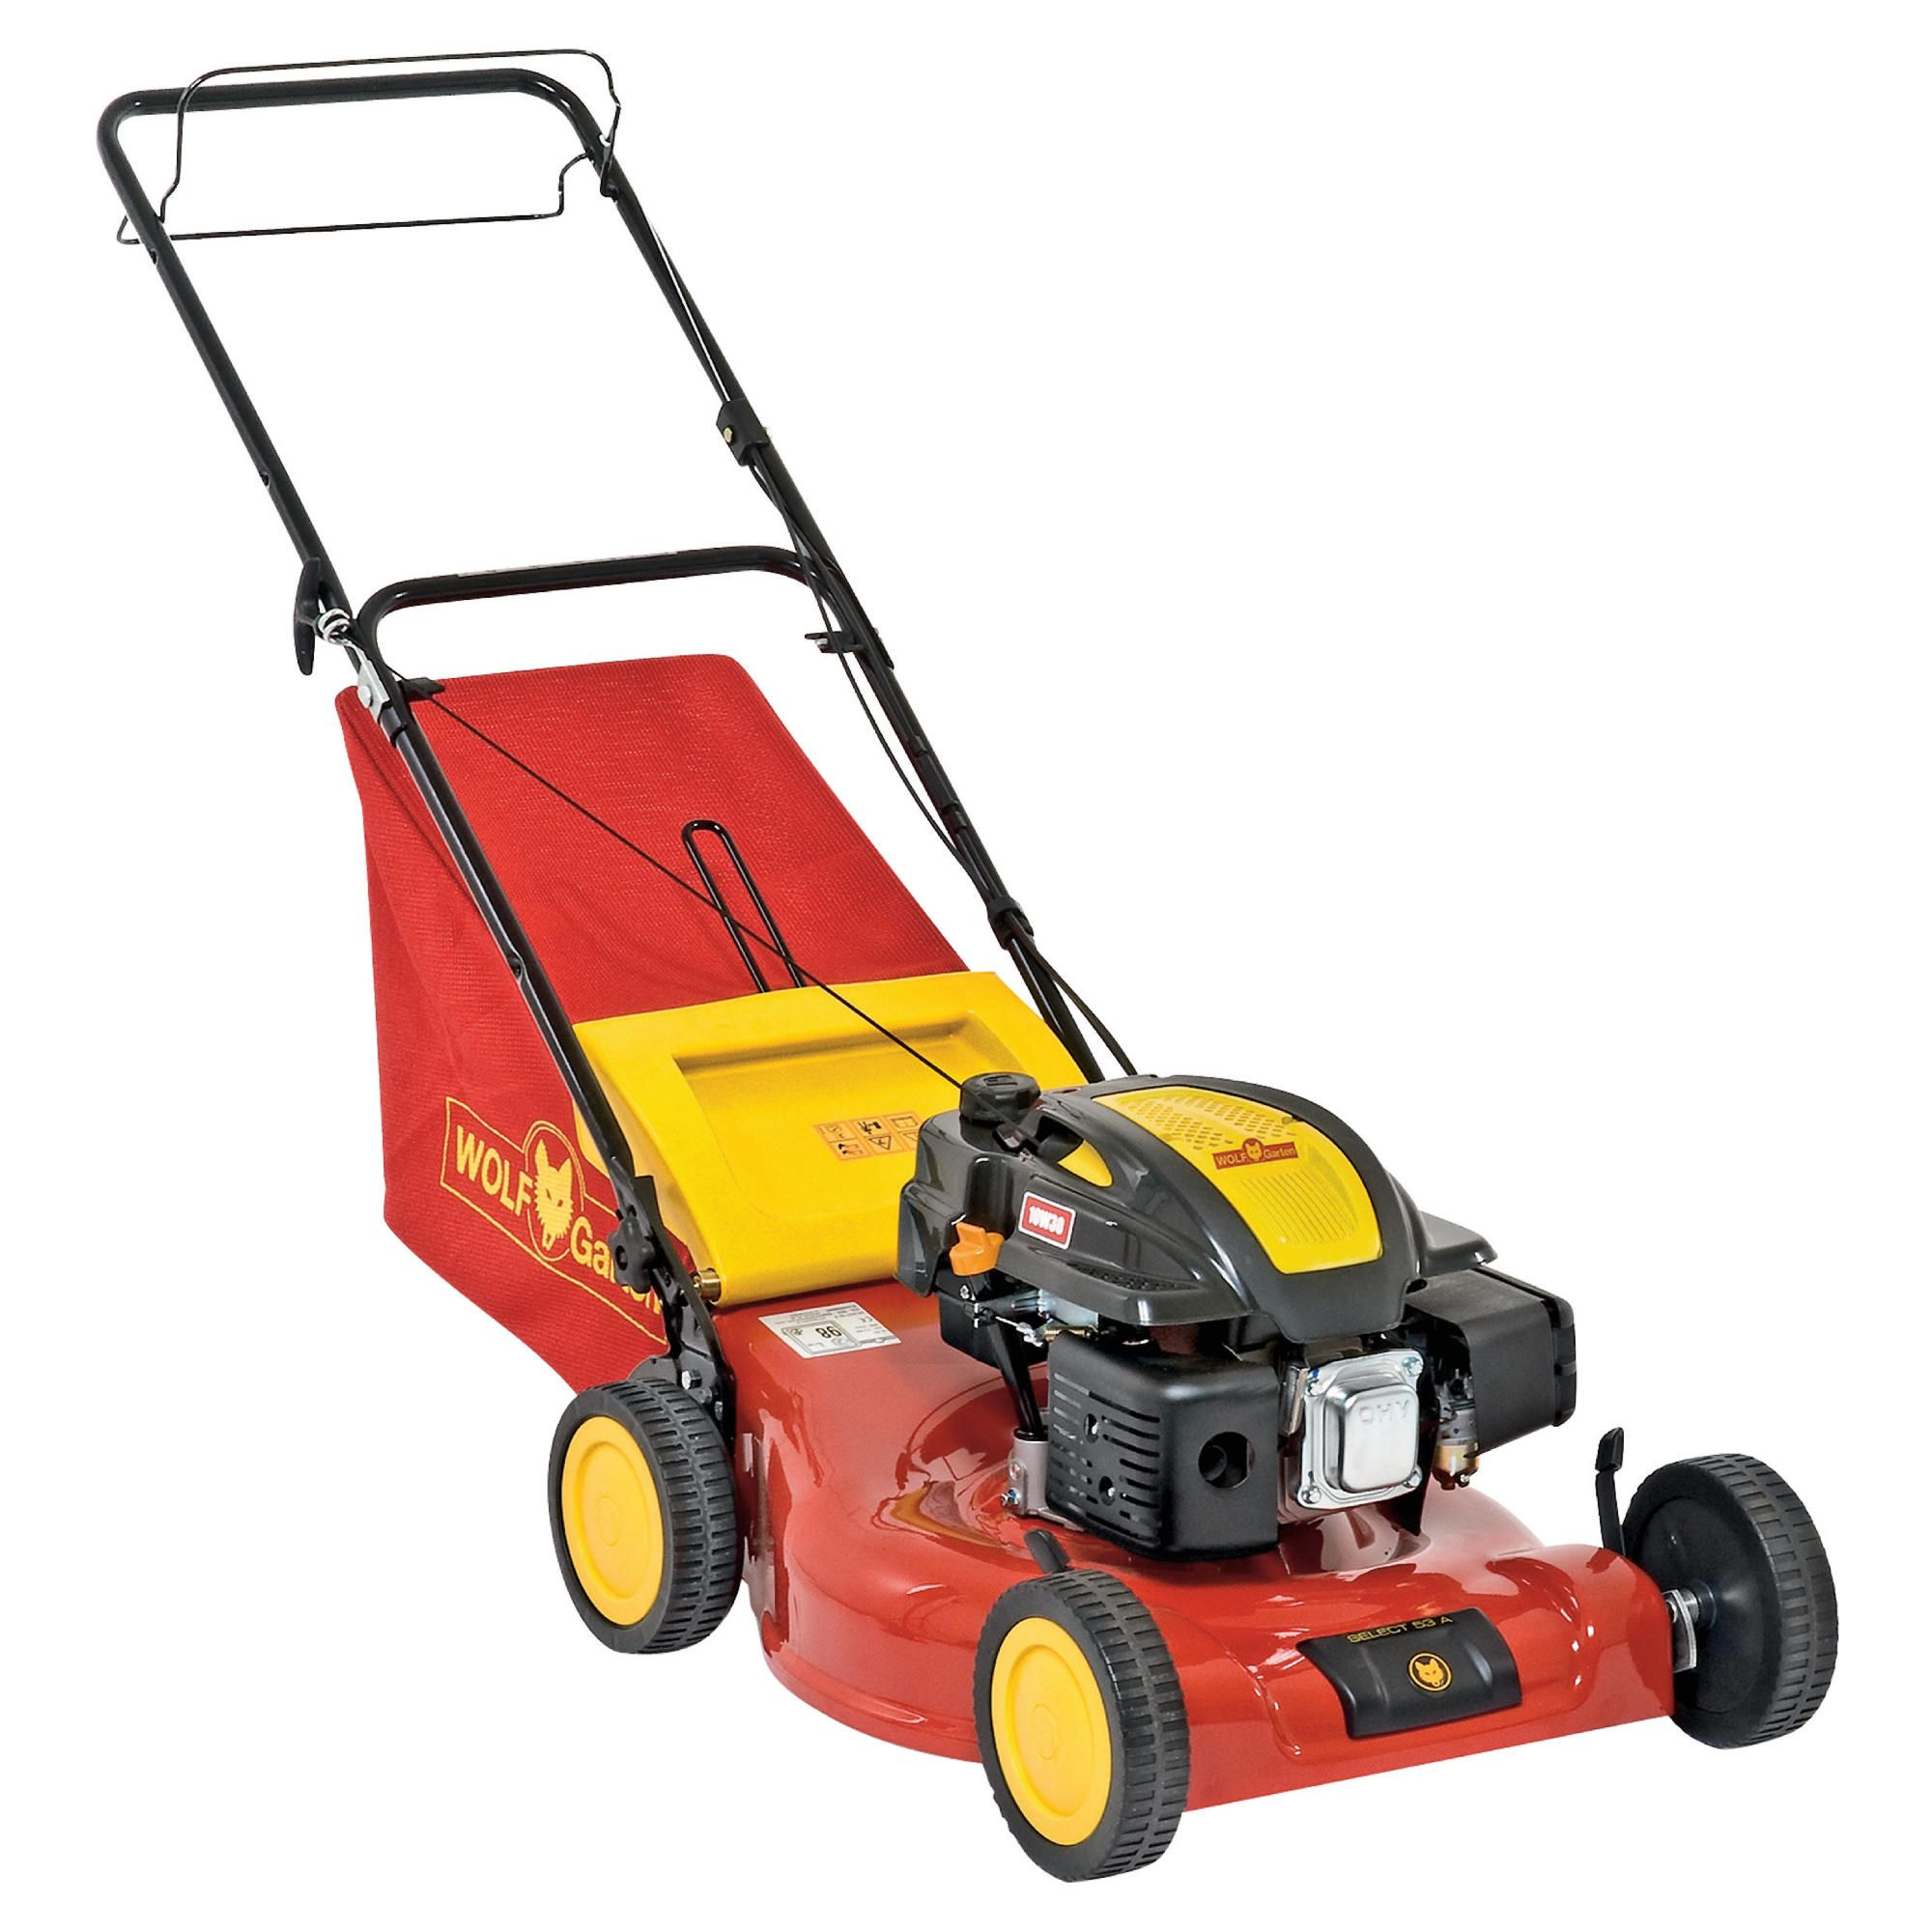 Wolf Select Petrol Lawnmower S5300A at Tesco Direct